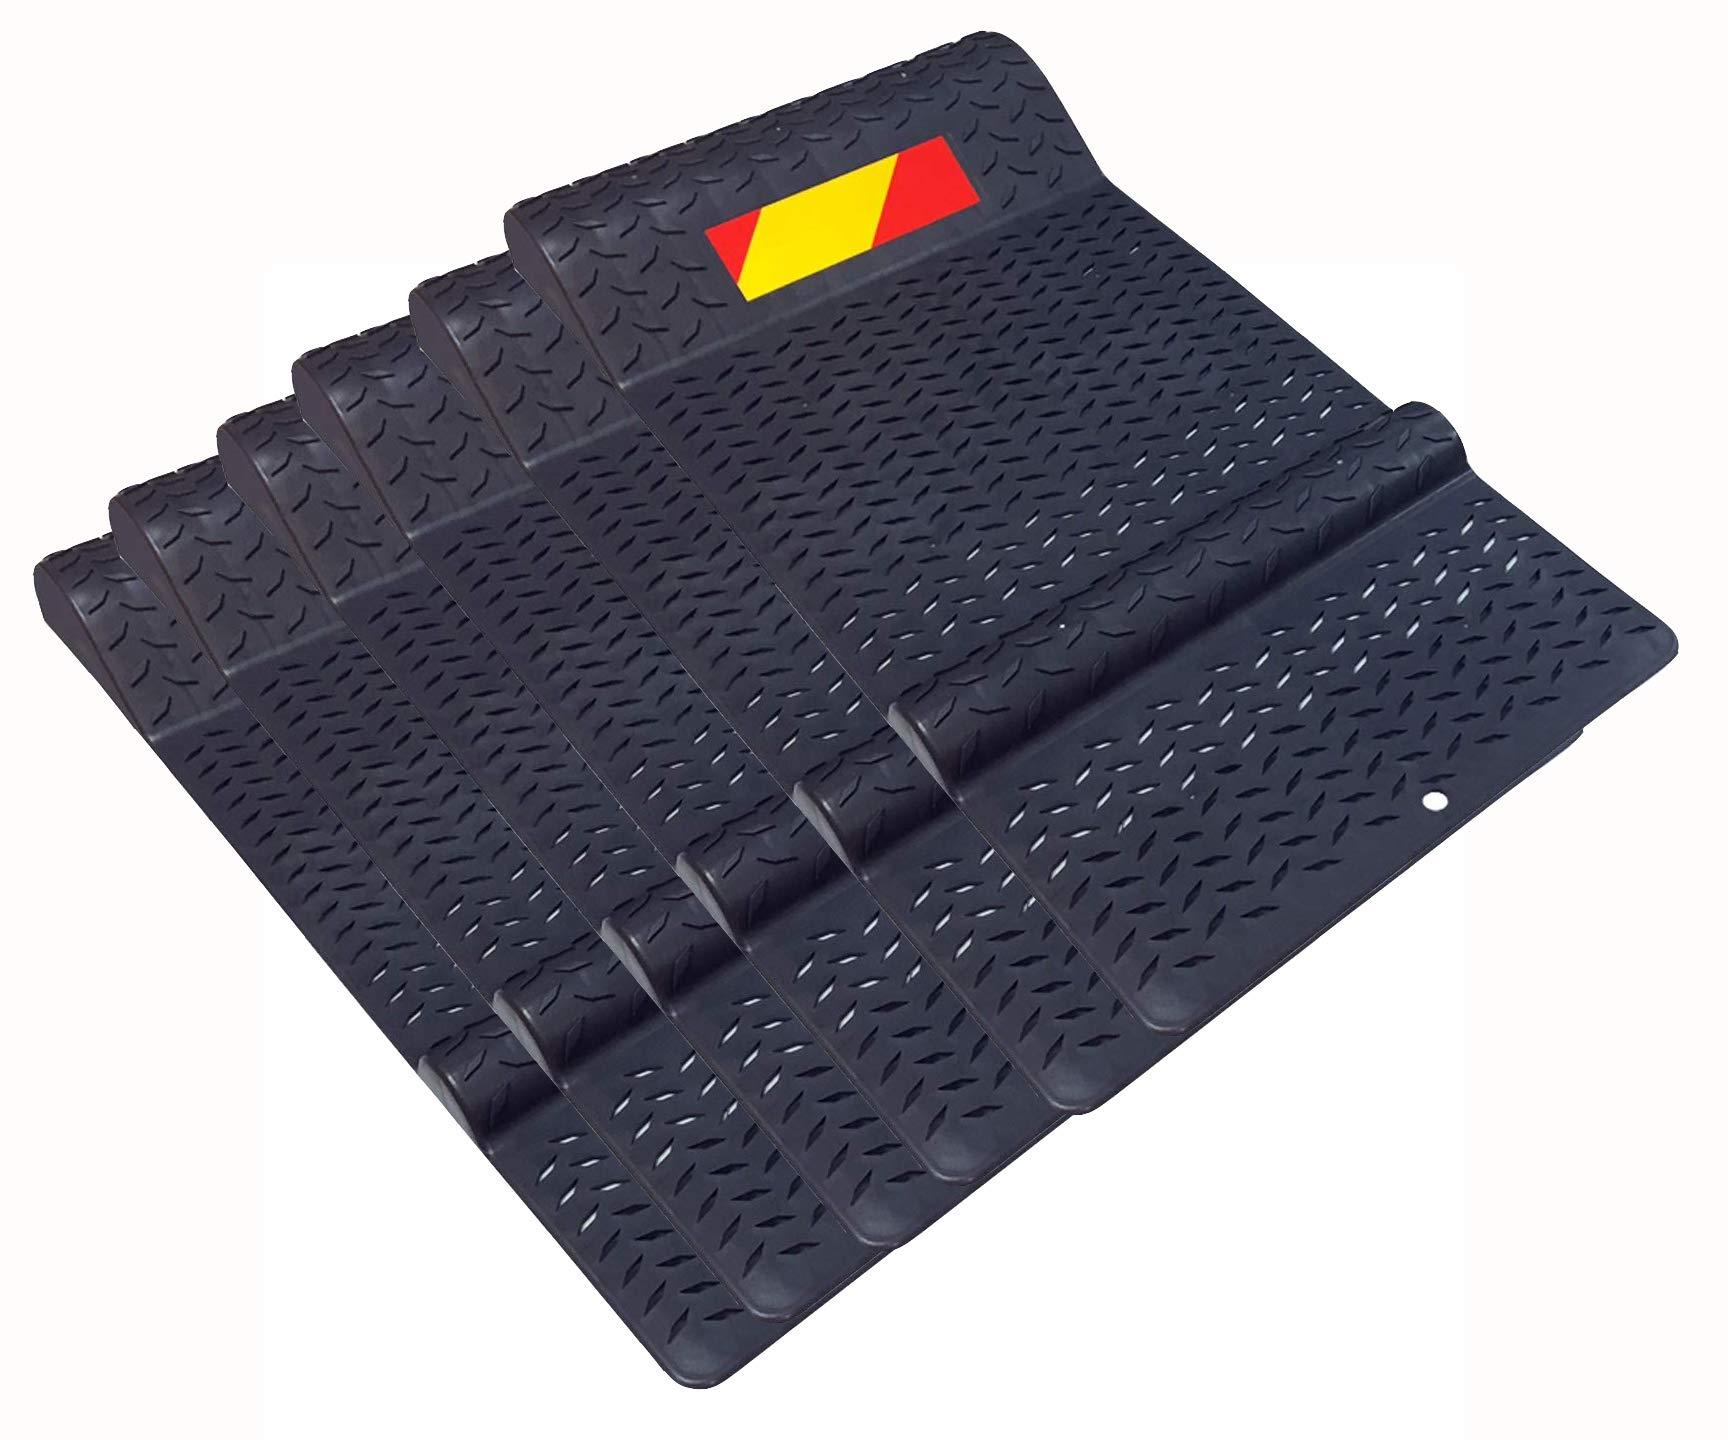 Electriduct Pack of 6 Plastic Park Right Parking Mat Guides for Garage Vehicles, Antiskid Car Safety - Black